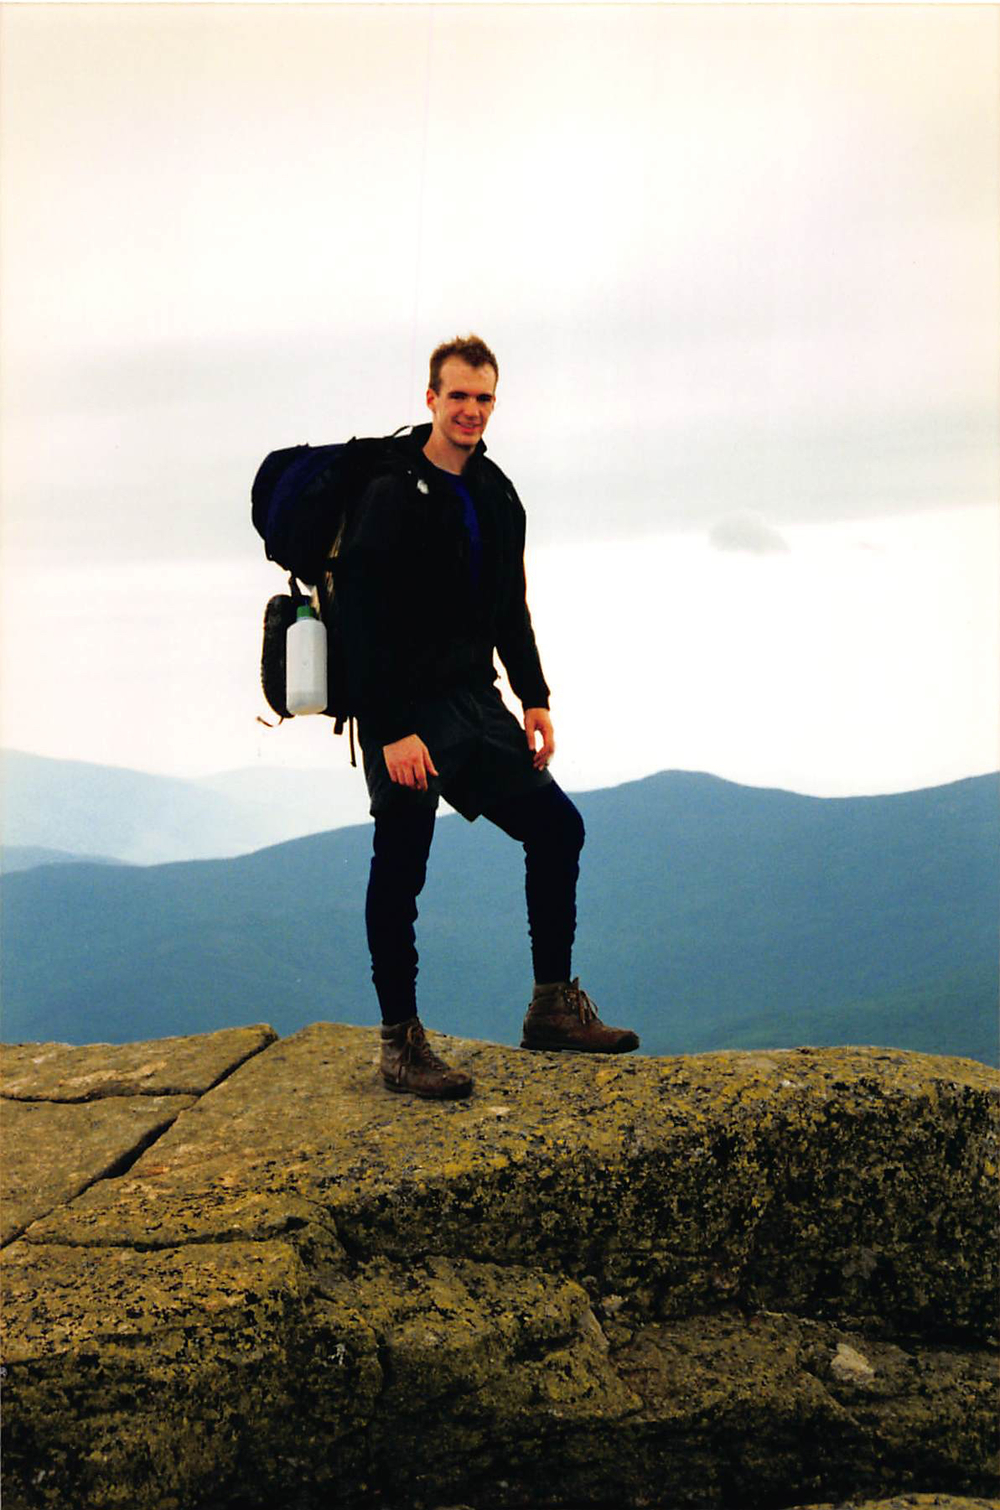 Hiking The Presidential Range in New Hampshire